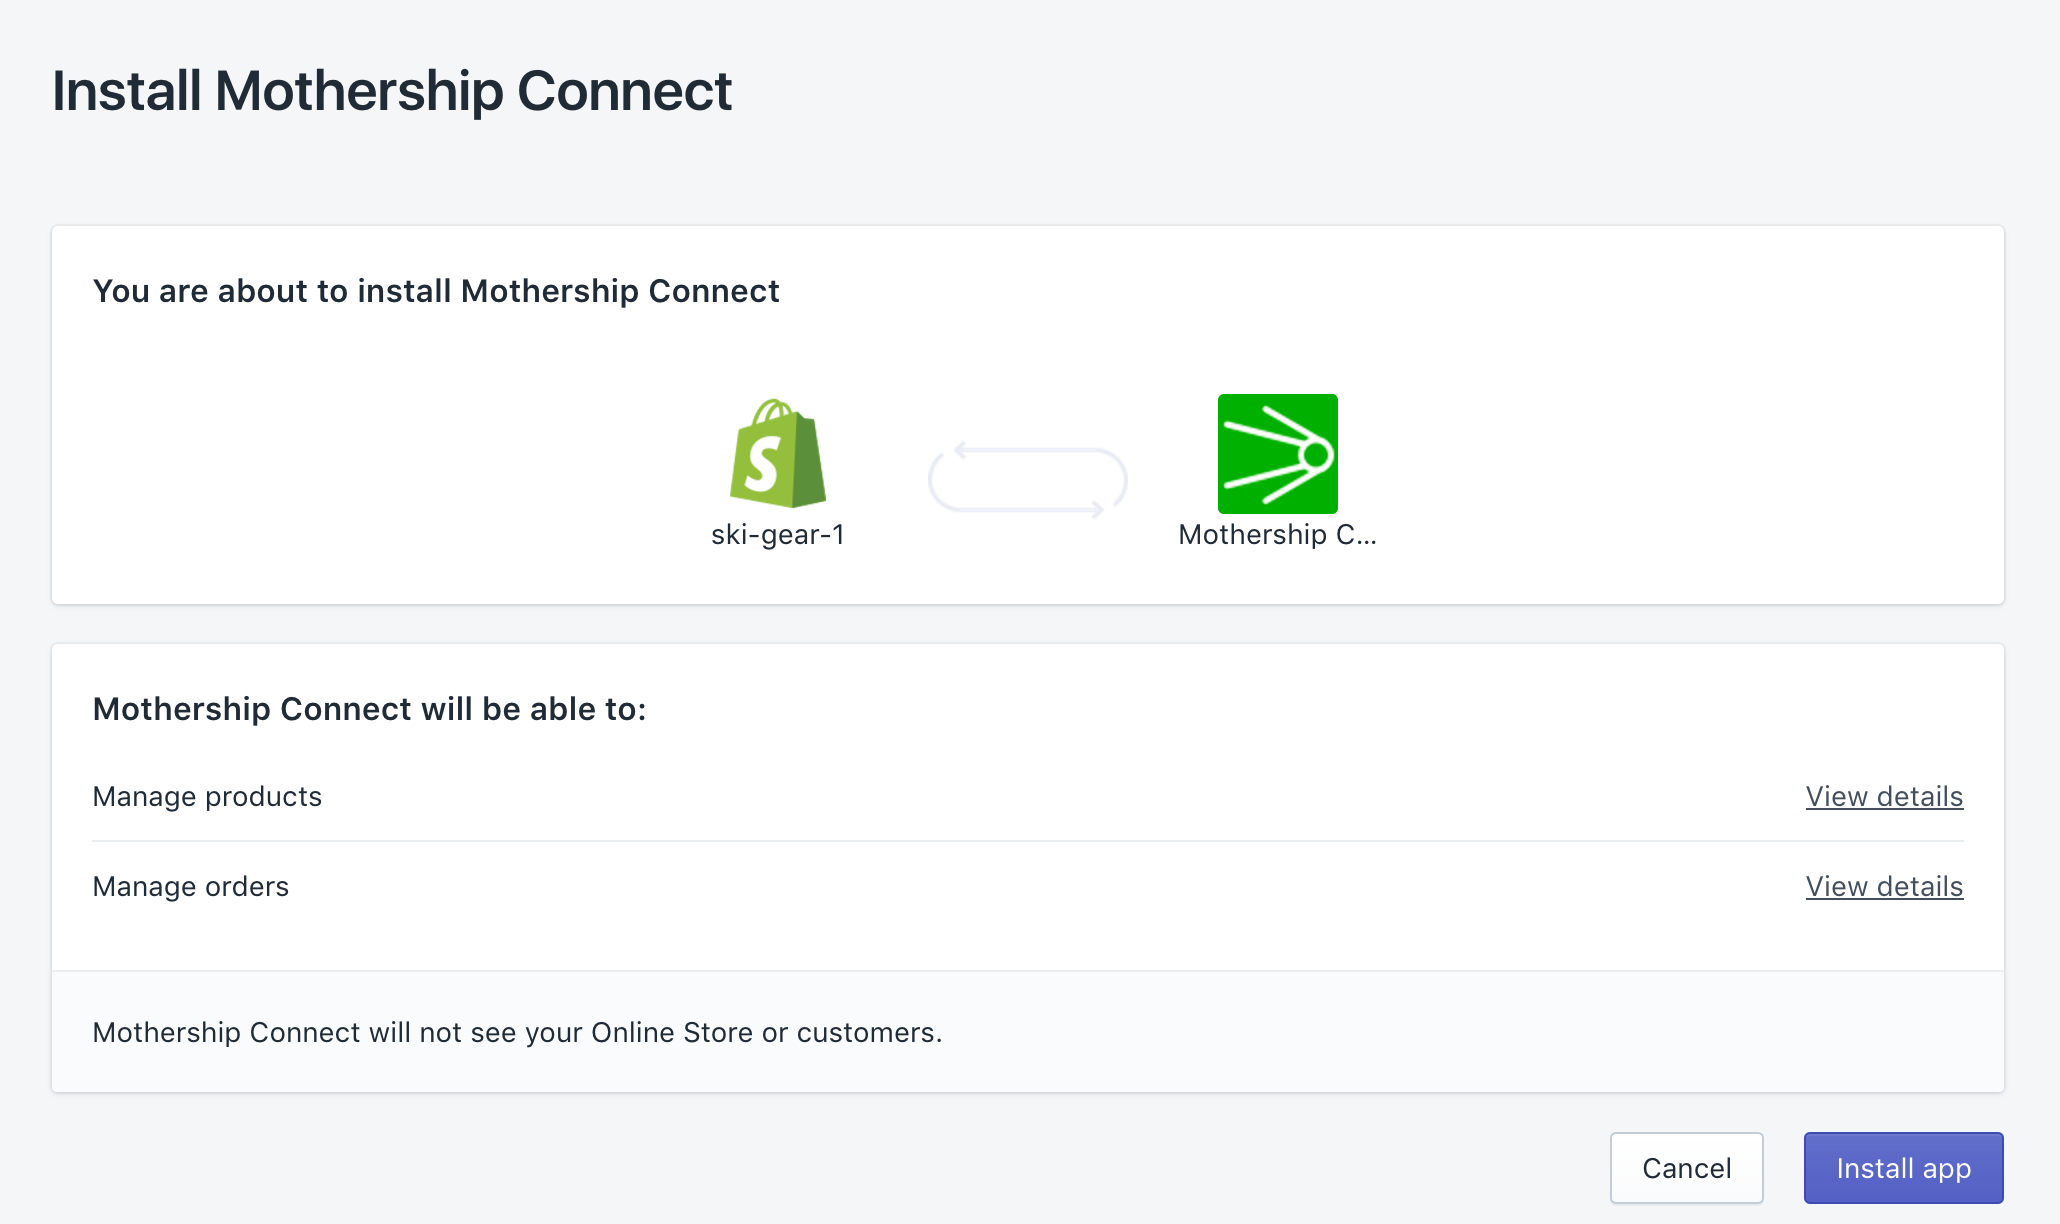 How do I install the Mothership Connect app for Shopify